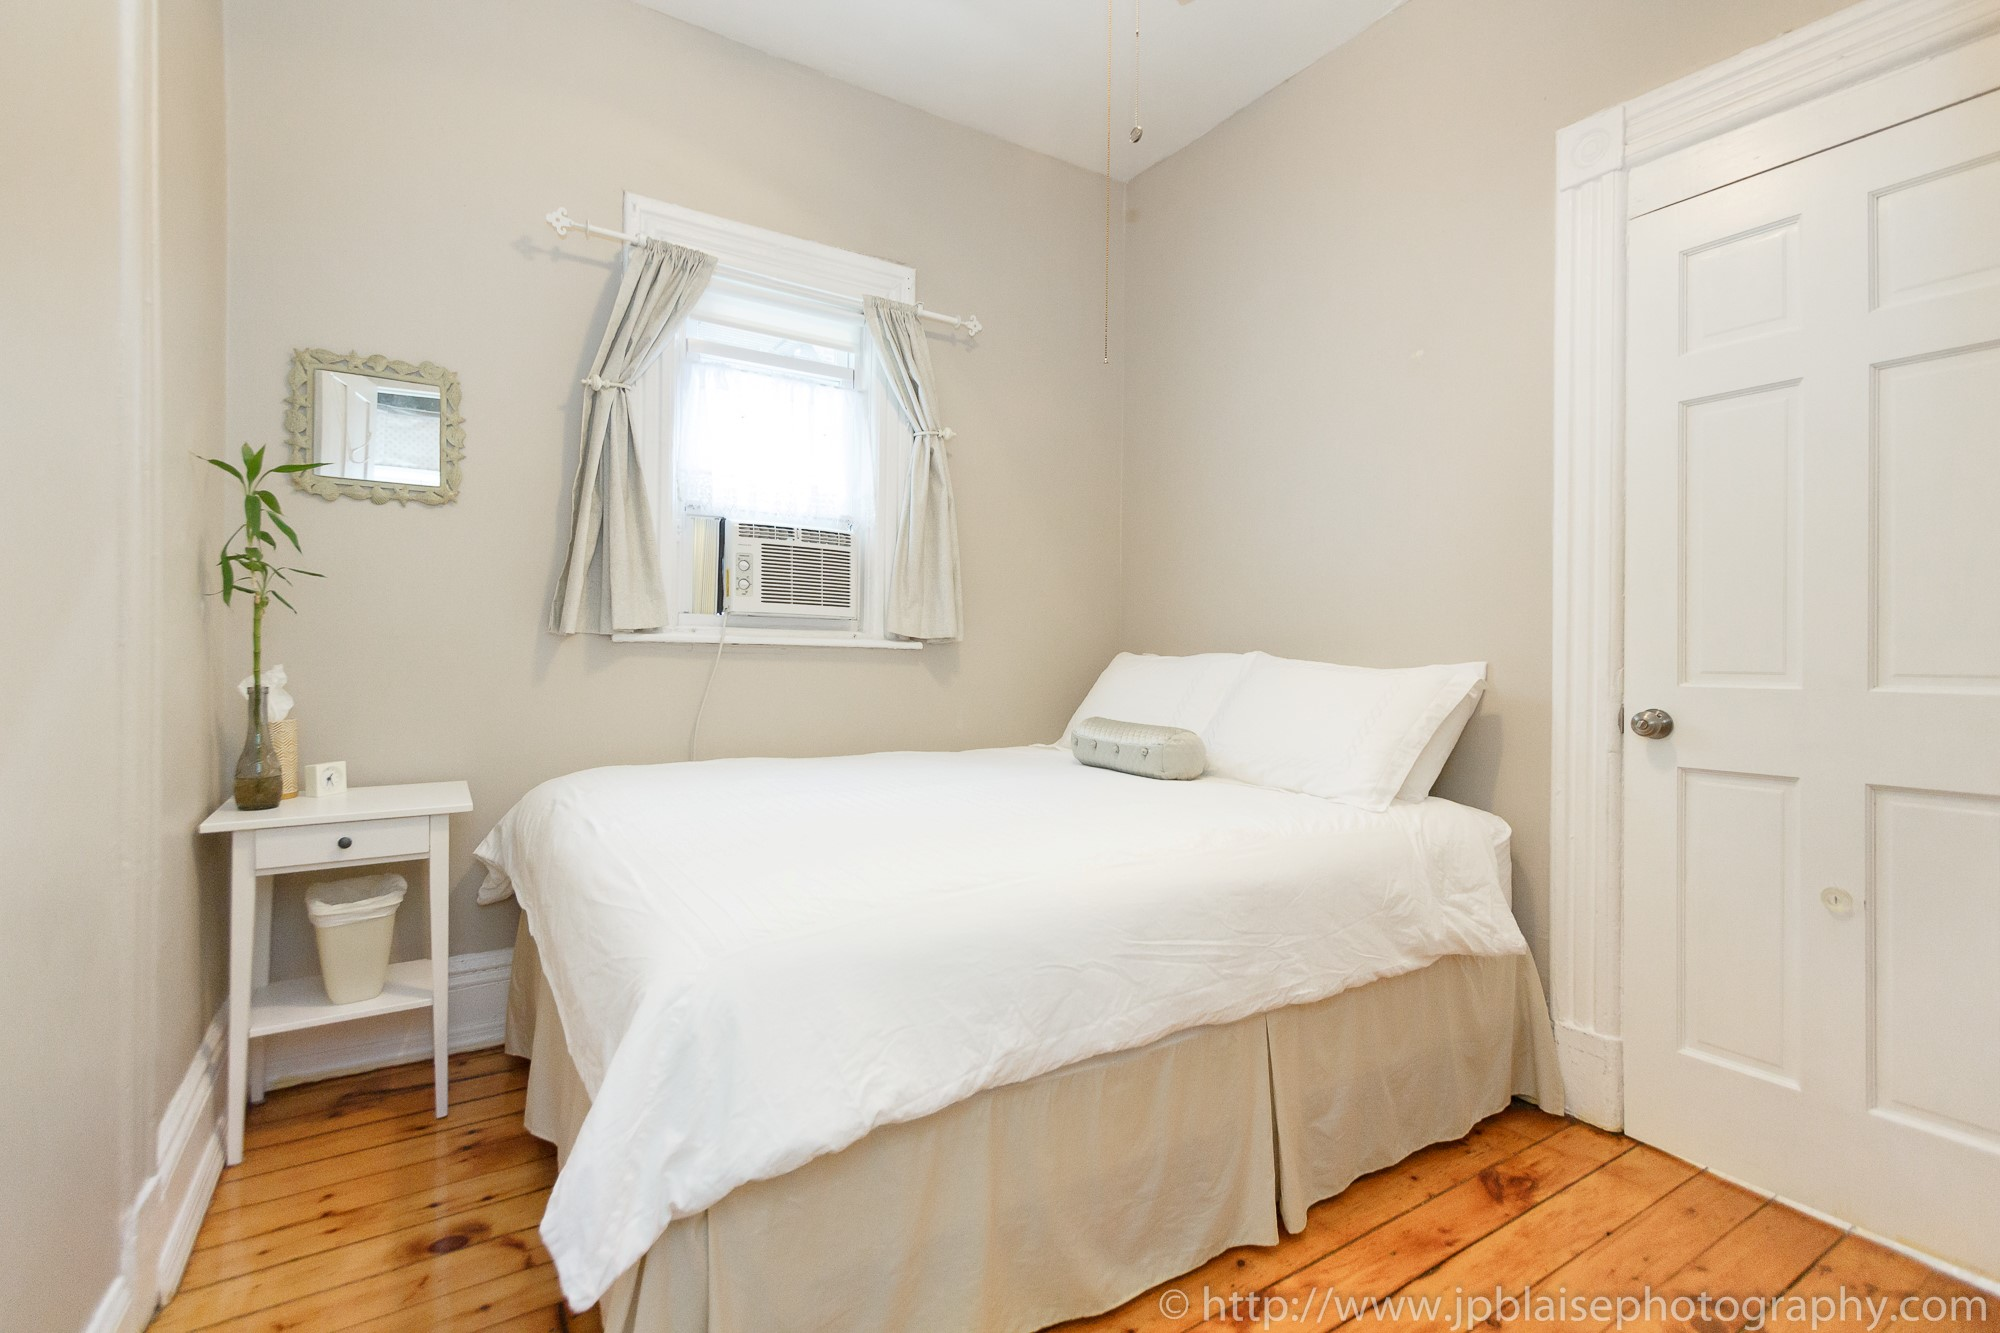 apartment photographer park slope one bedroom apartment brooklyn. Apartment photographer adventures in New York  One bedroom unit in